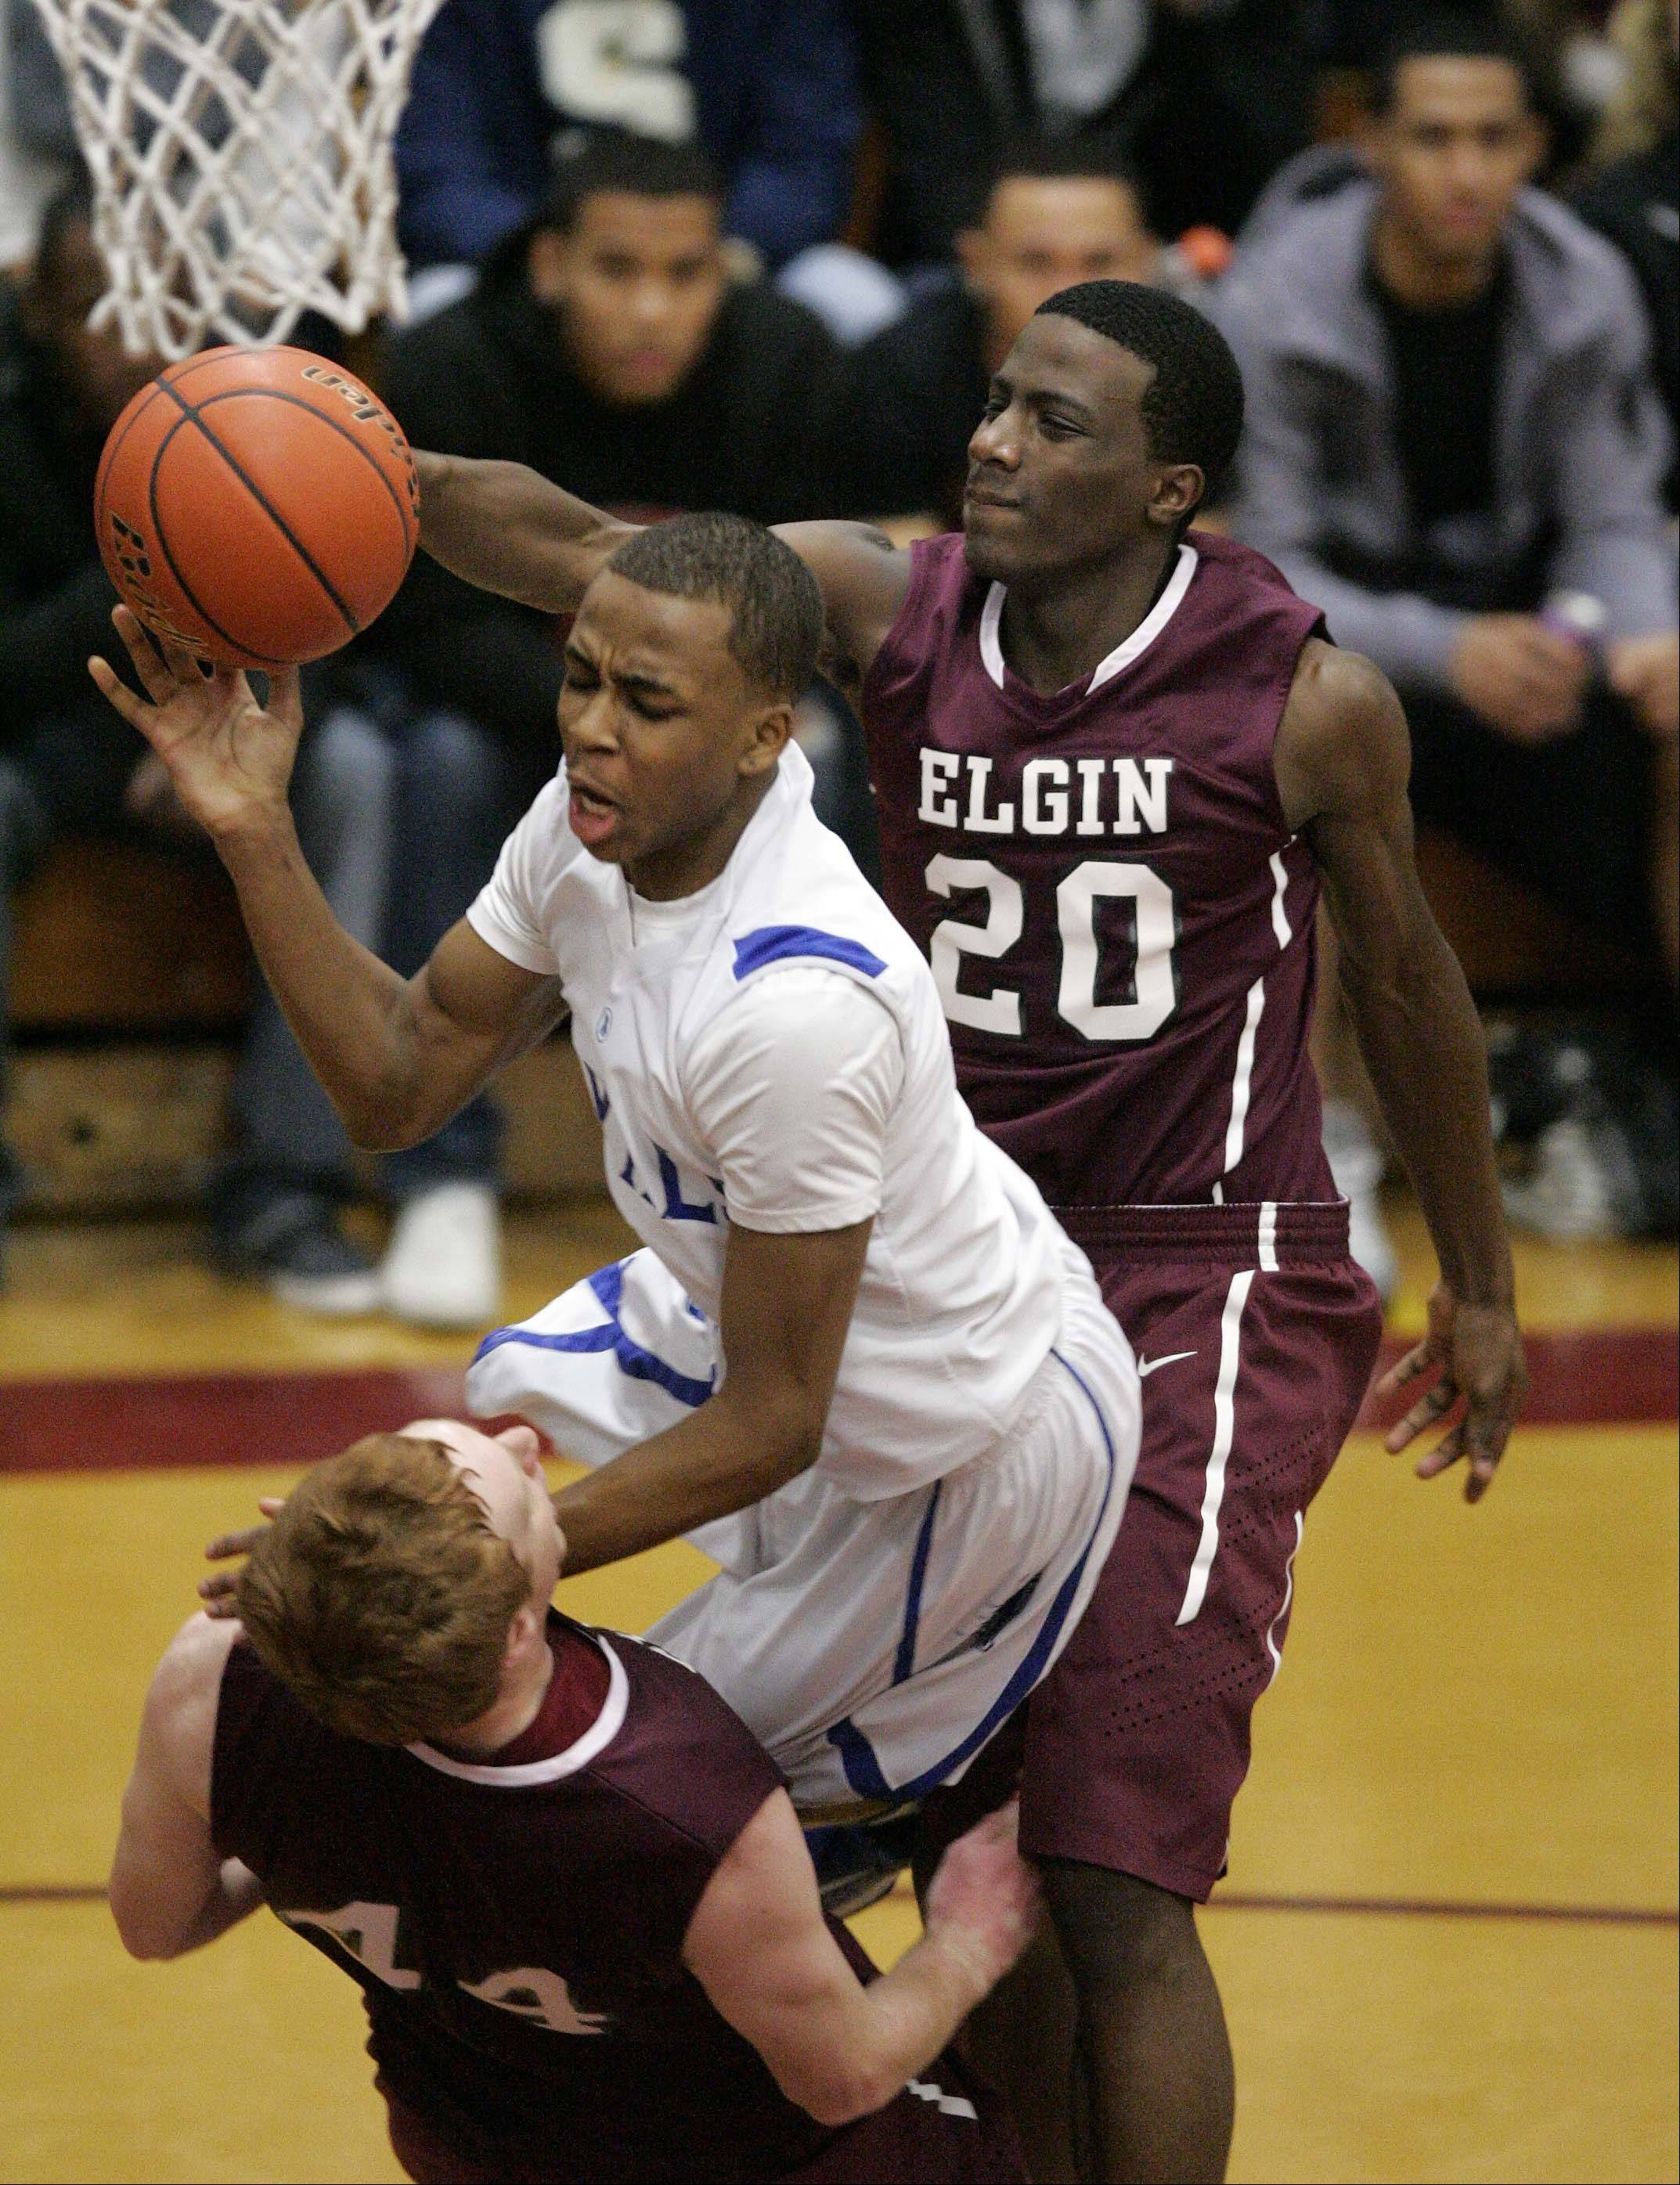 Larkin's Quantice Hunter (1) goes hard to the hoop as Elgin post Eric Sedlack (44) stands strong during the boys championship basketball game of the 38th Annual Elgin Boys Holiday Basketball Tournament Saturday, December 29, 2012 in Elgin.